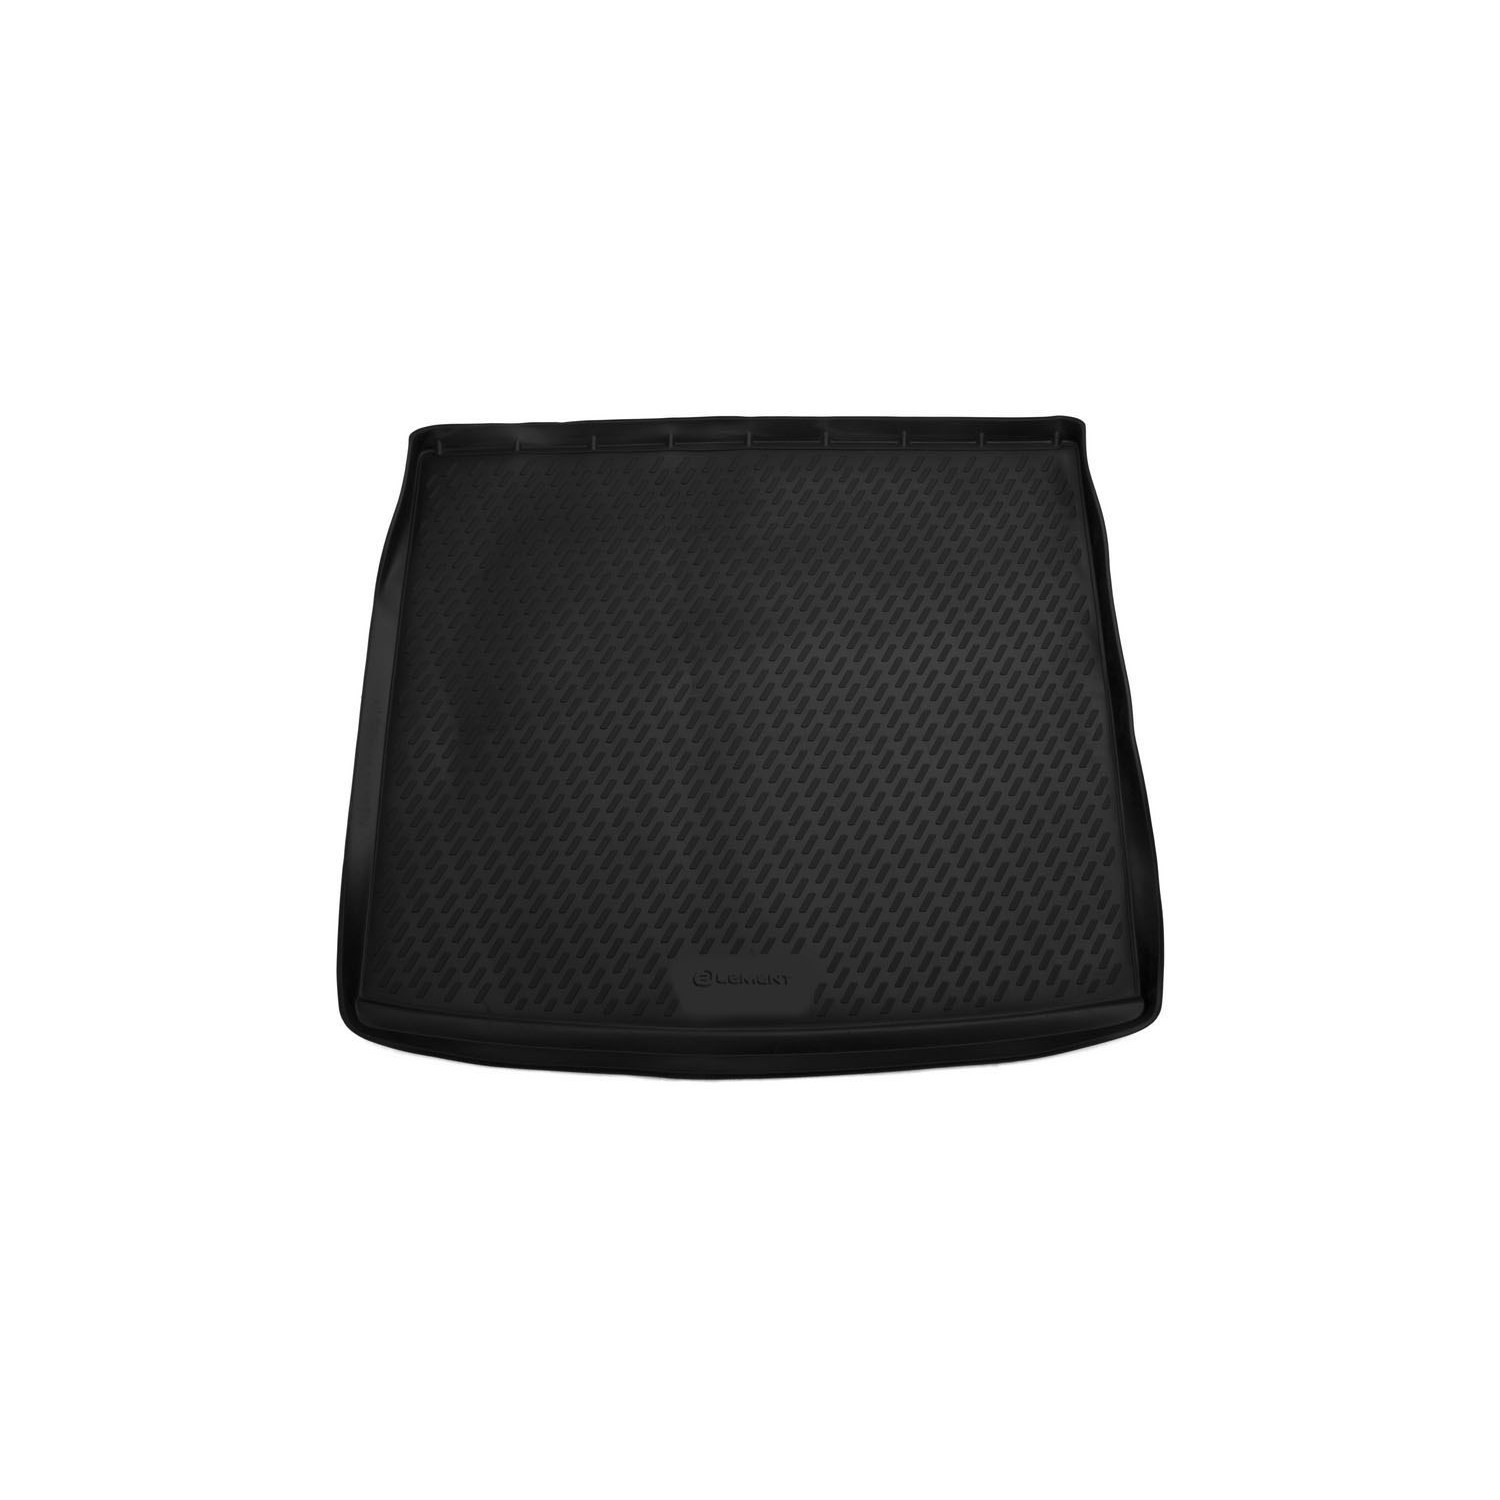 Trunk Mat For FORD Grand C-Max 11/2010, Cf. Lengths. B000.21